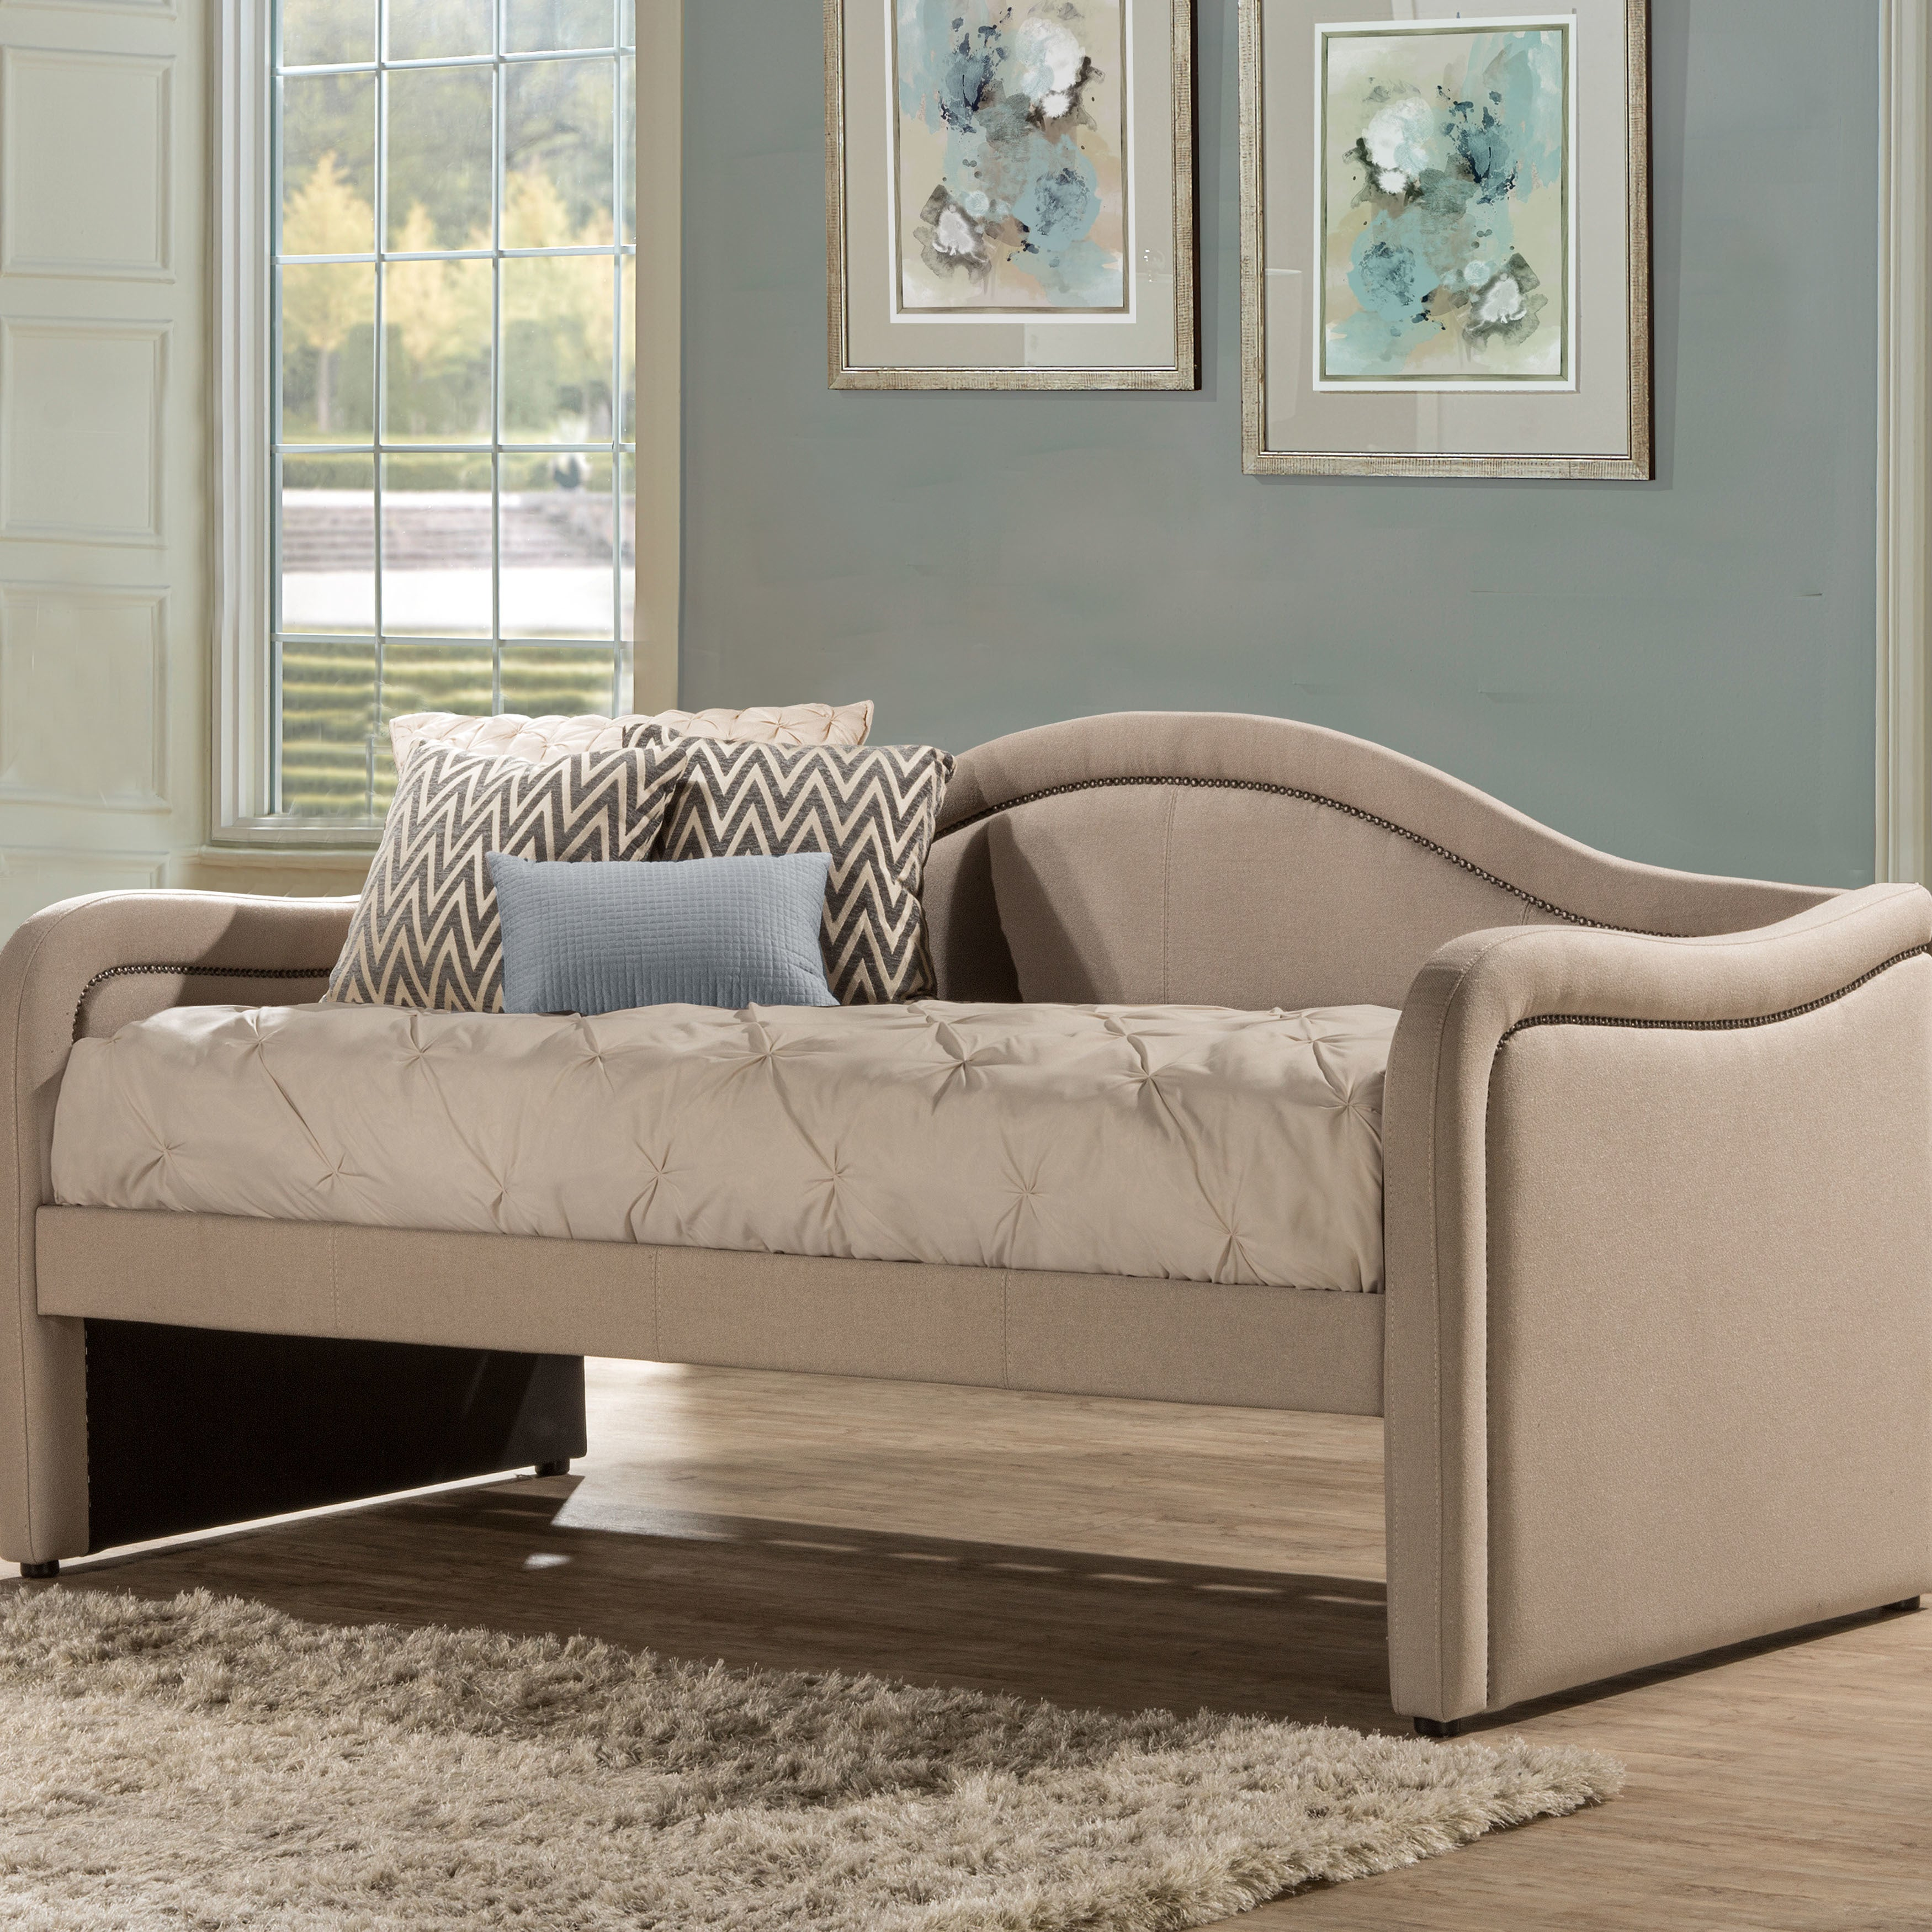 Shop hillsdale furniture melbourne daybed in linen oyster free shipping today overstock 17490250